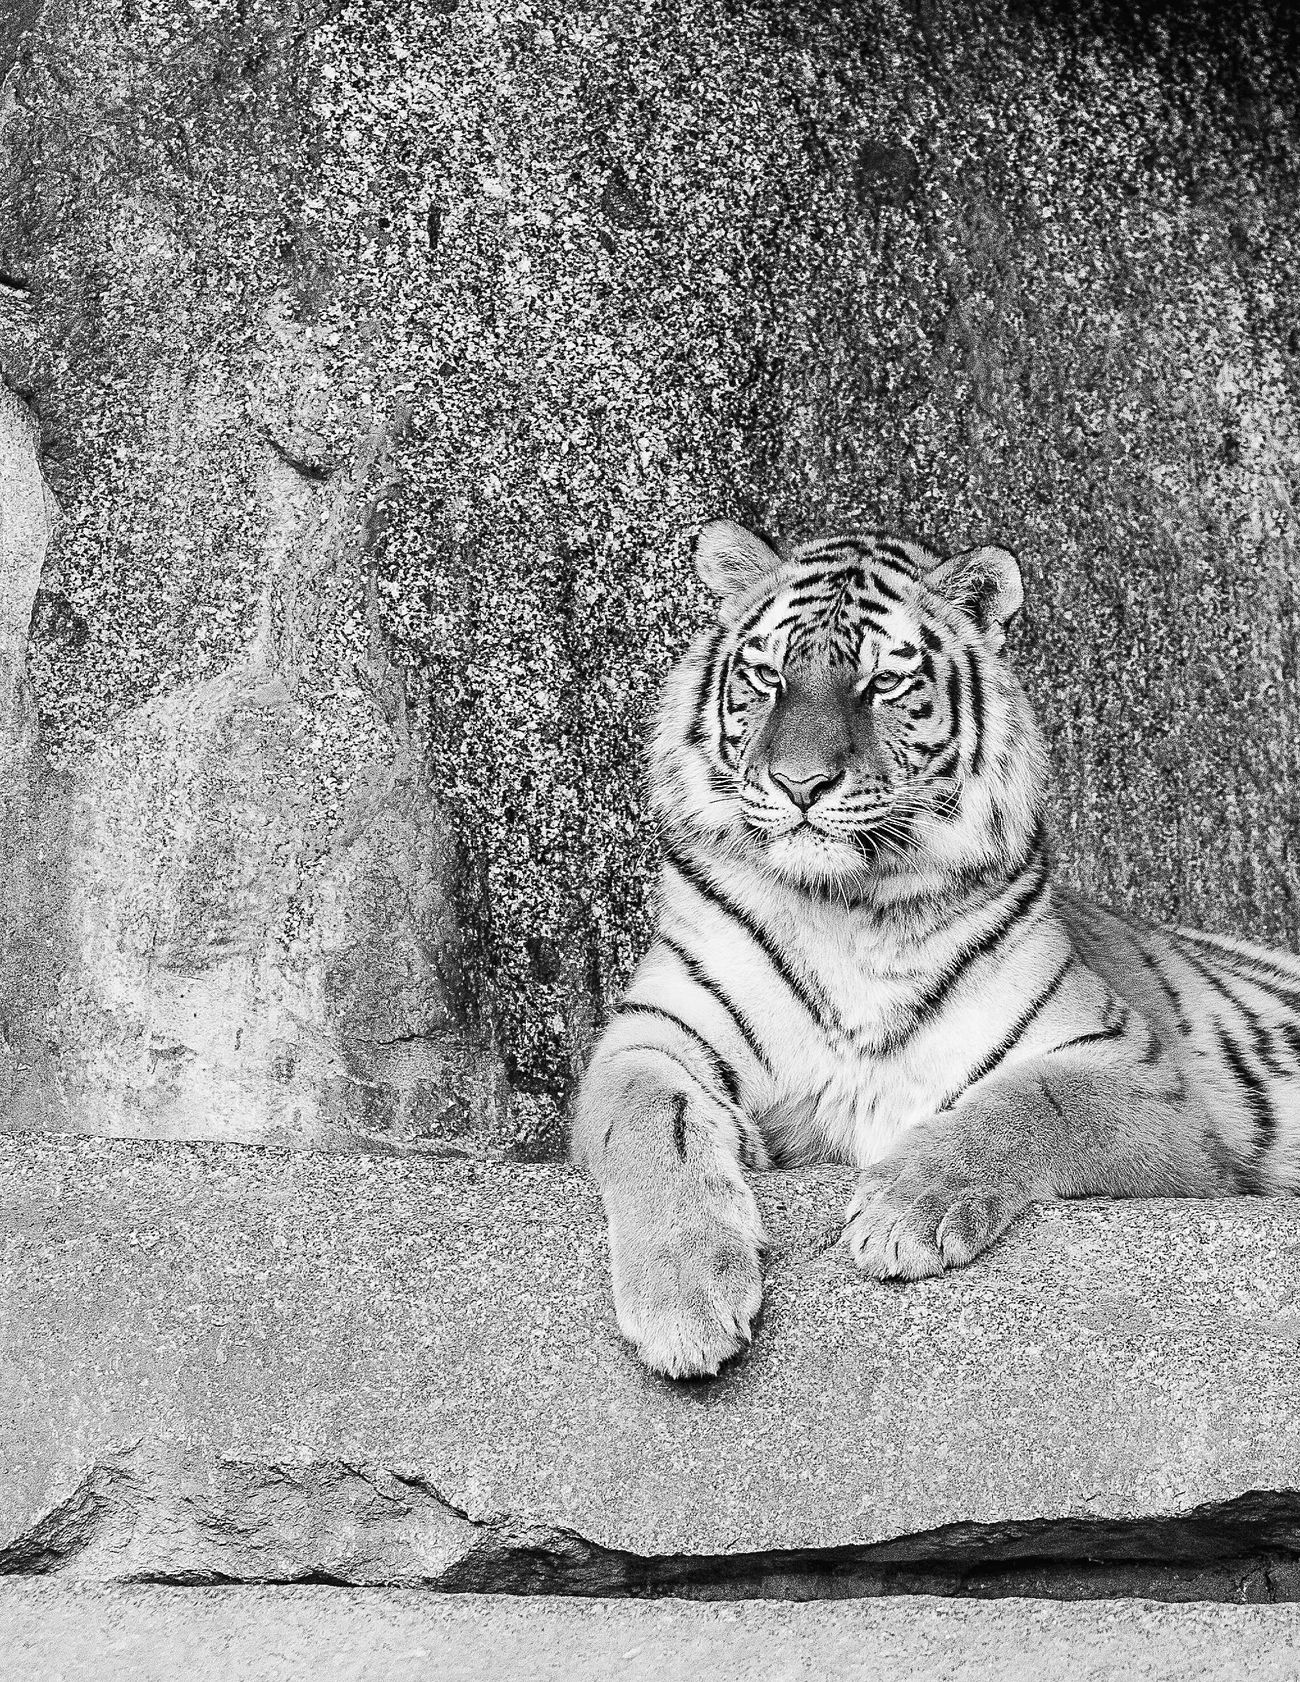 Animal Themes Tiger Looking At Camera No People Zoo Animals  Portrait Black & White Monochrome Photography